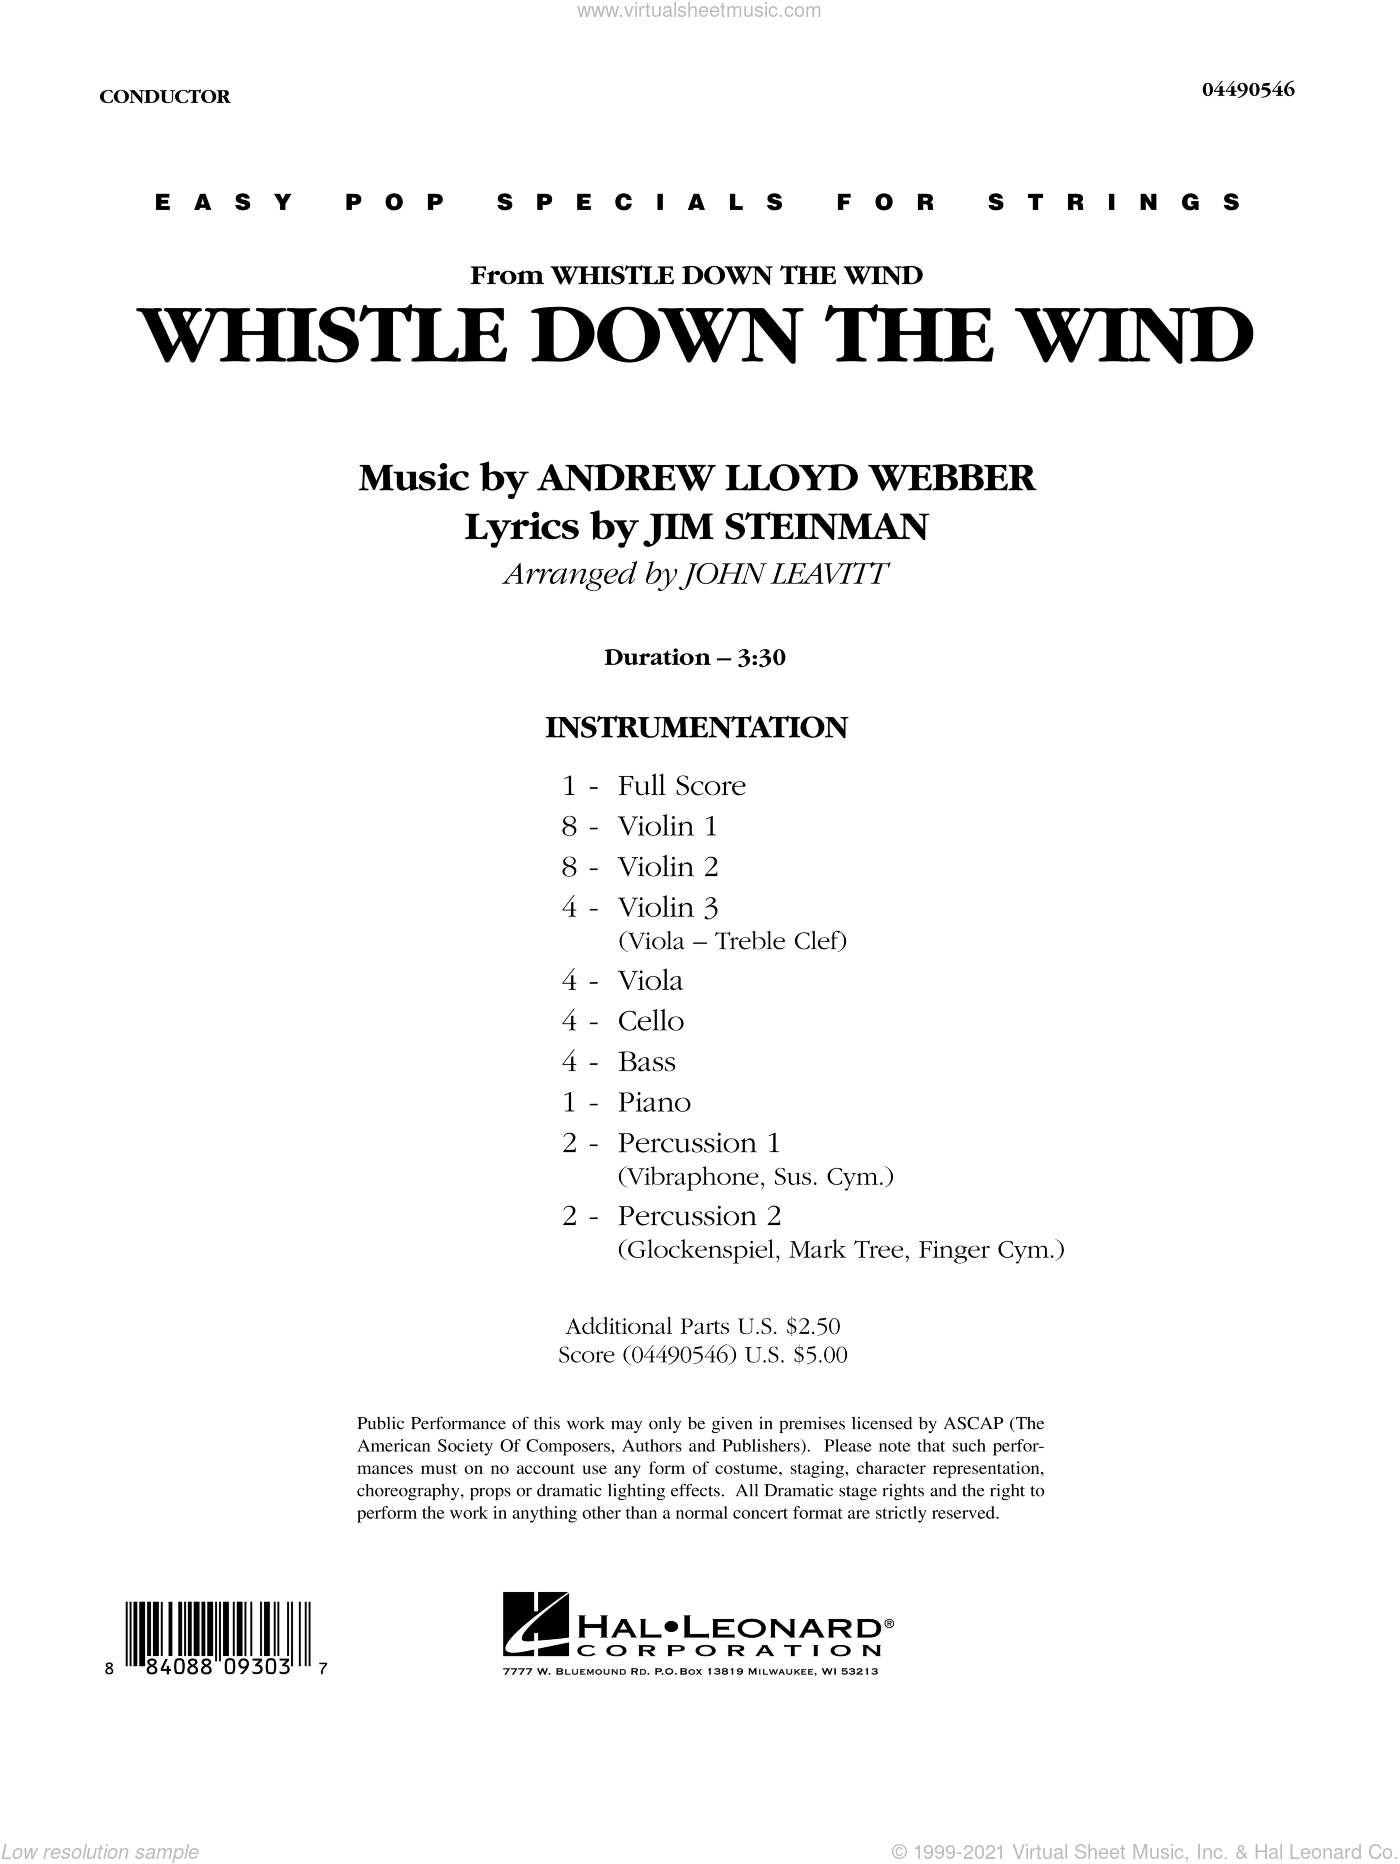 Whistle Down The Wind sheet music for orchestra (full score) by Andrew Lloyd Webber